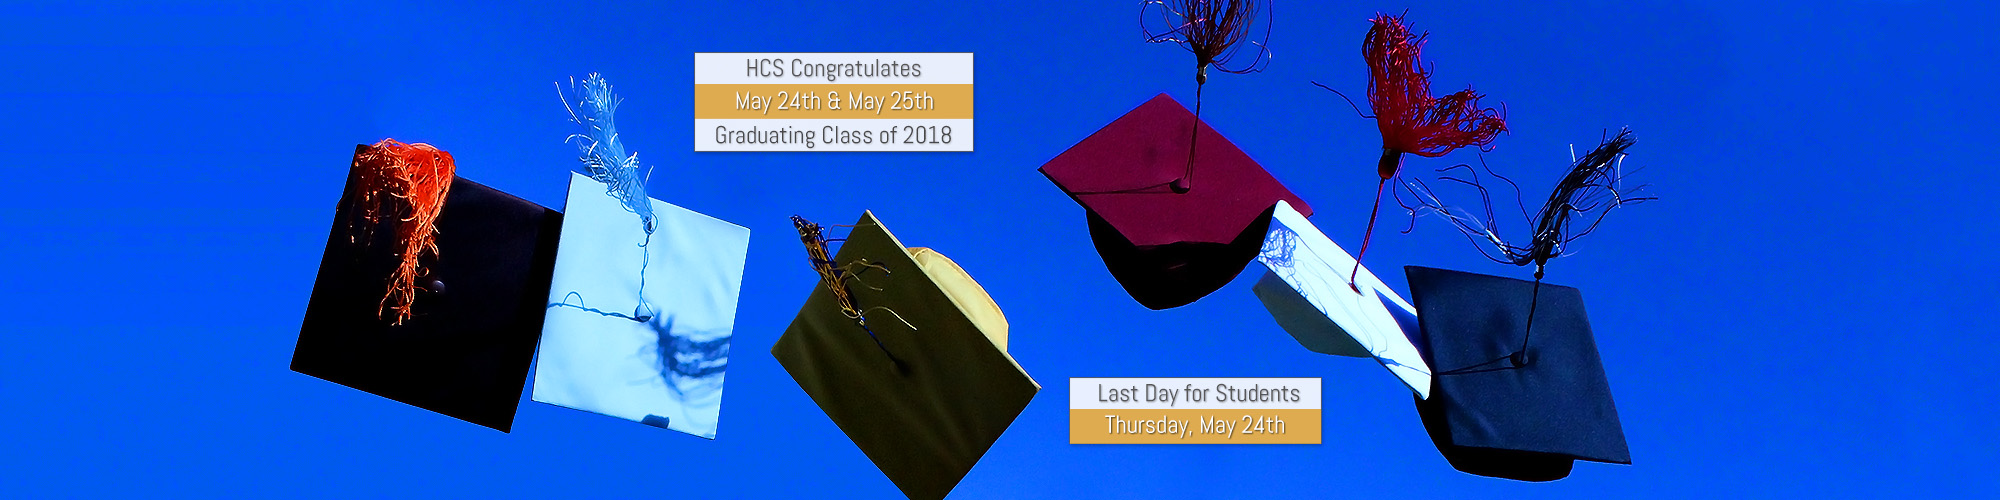 Graduation cap throw with messaging: HCS Congratulates Graduating Class of 2018, May 24th & 25th; Last day for students is Thursday, May 24th